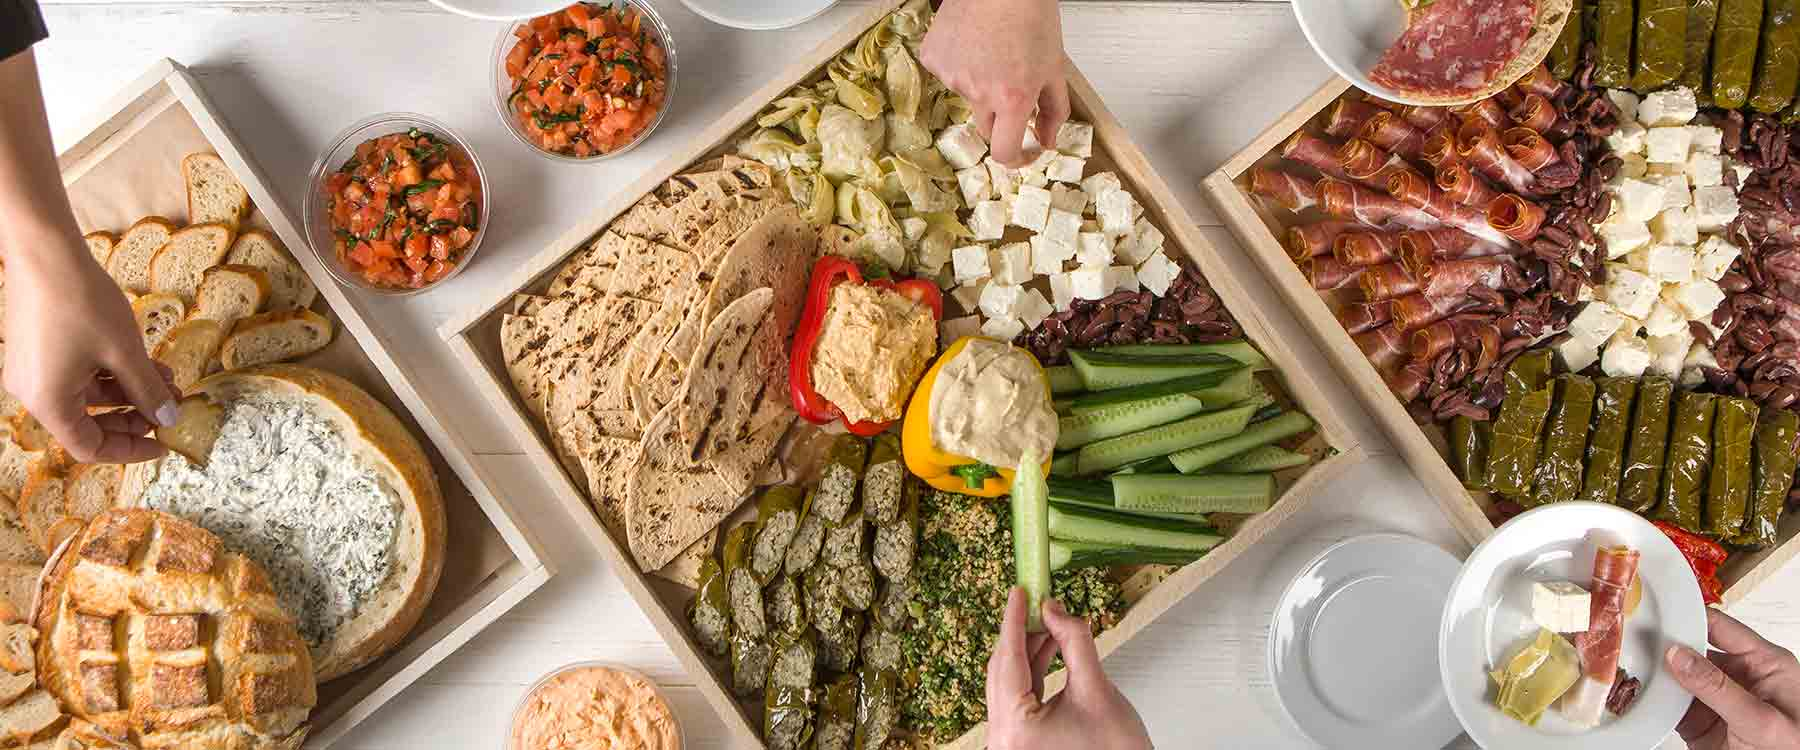 Hands filling plates from party platers